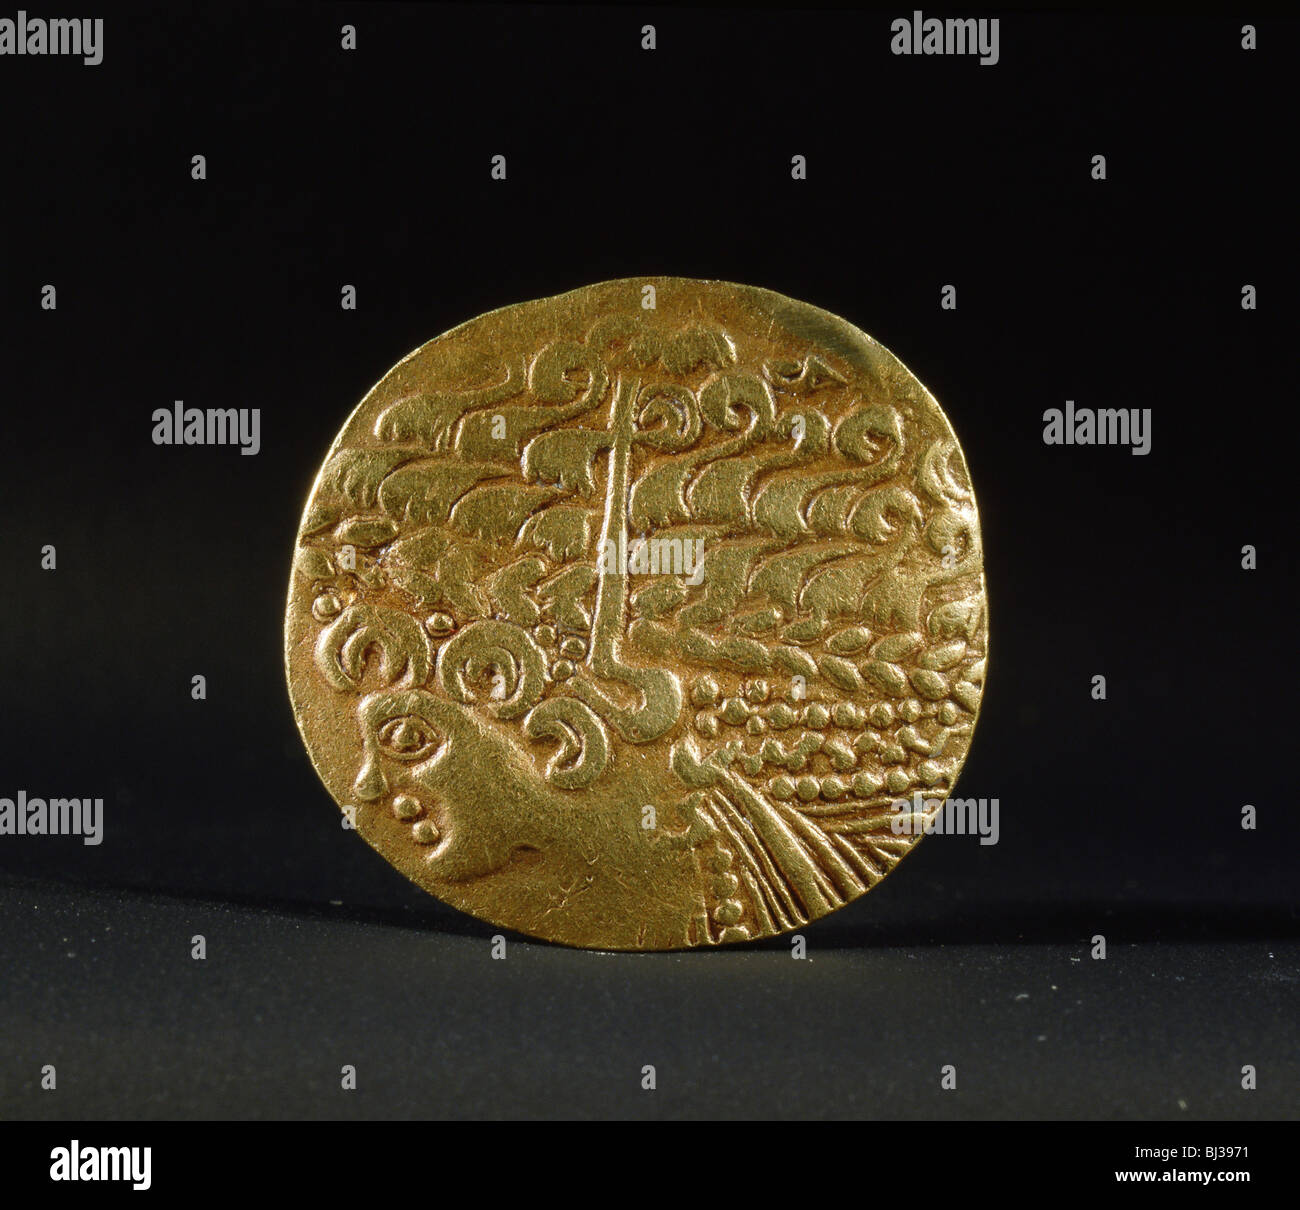 Gold coin belonging to the Ambiani, from the north of Gaul, 2nd century BC. Artist: Werner Forman - Stock Image